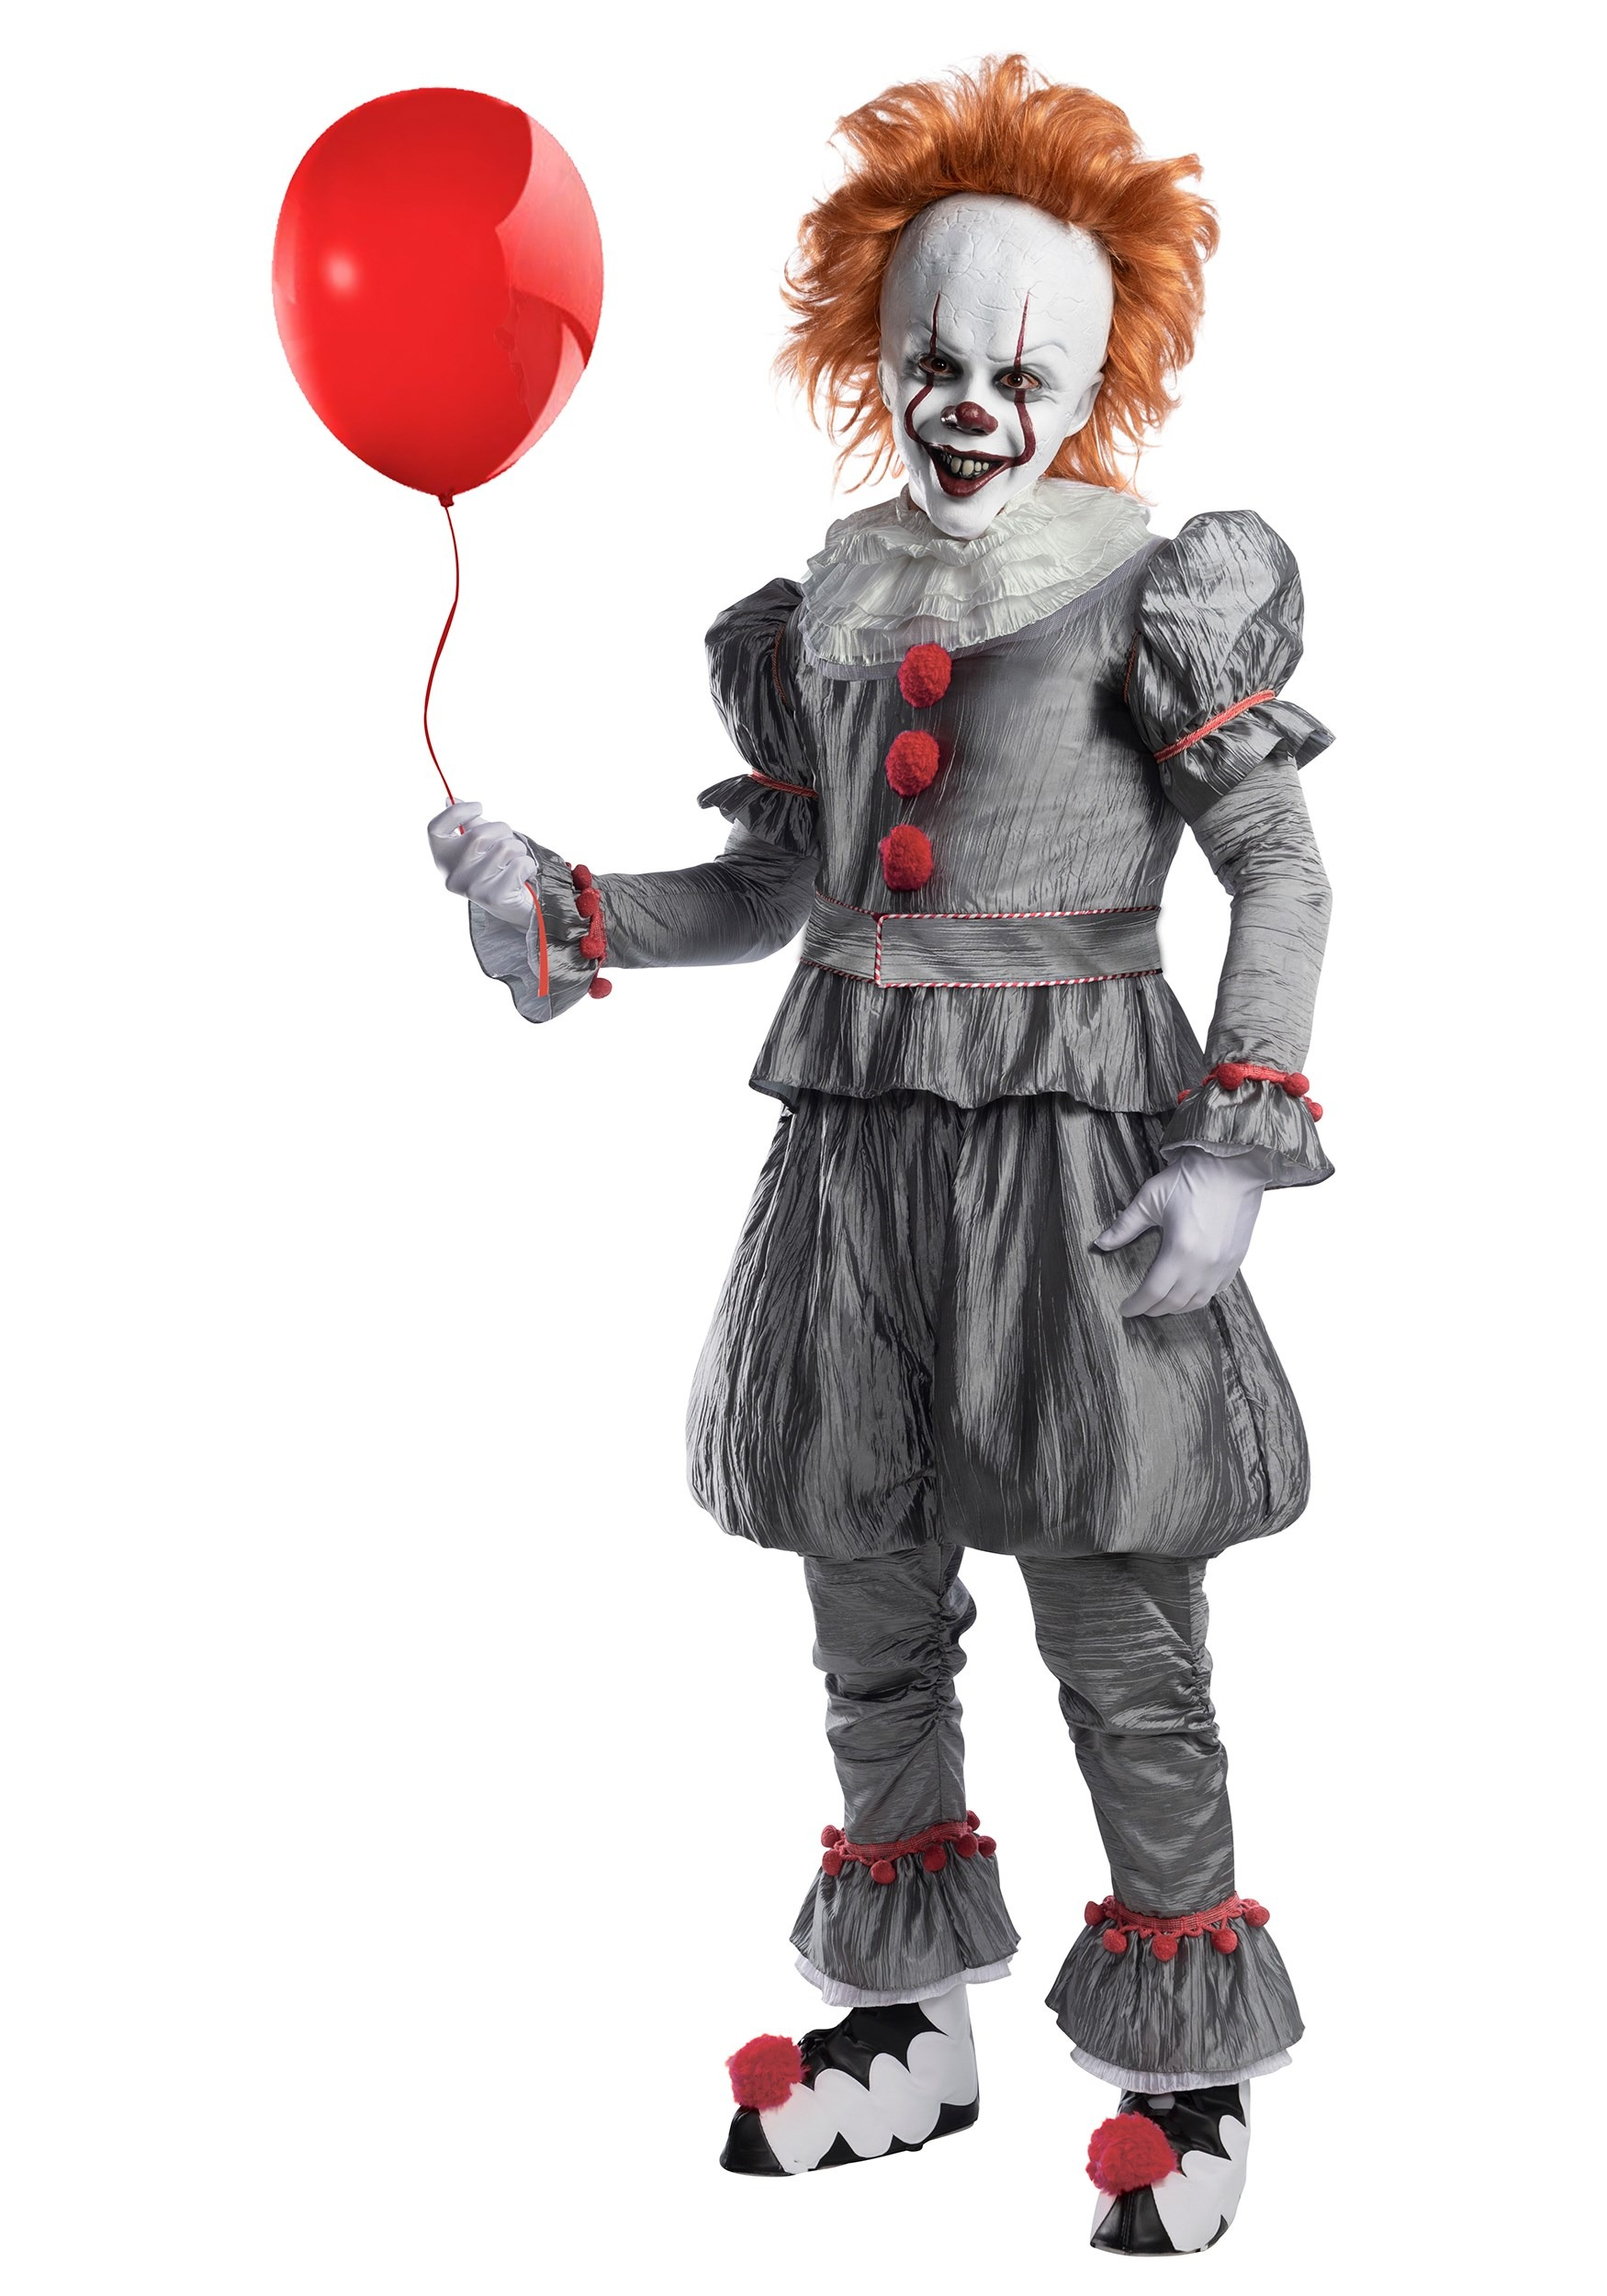 Pennywise costume kids pennywise it costume cosplay baby pennywise clown dress kids toddler costume baby clown costume Halloween costume